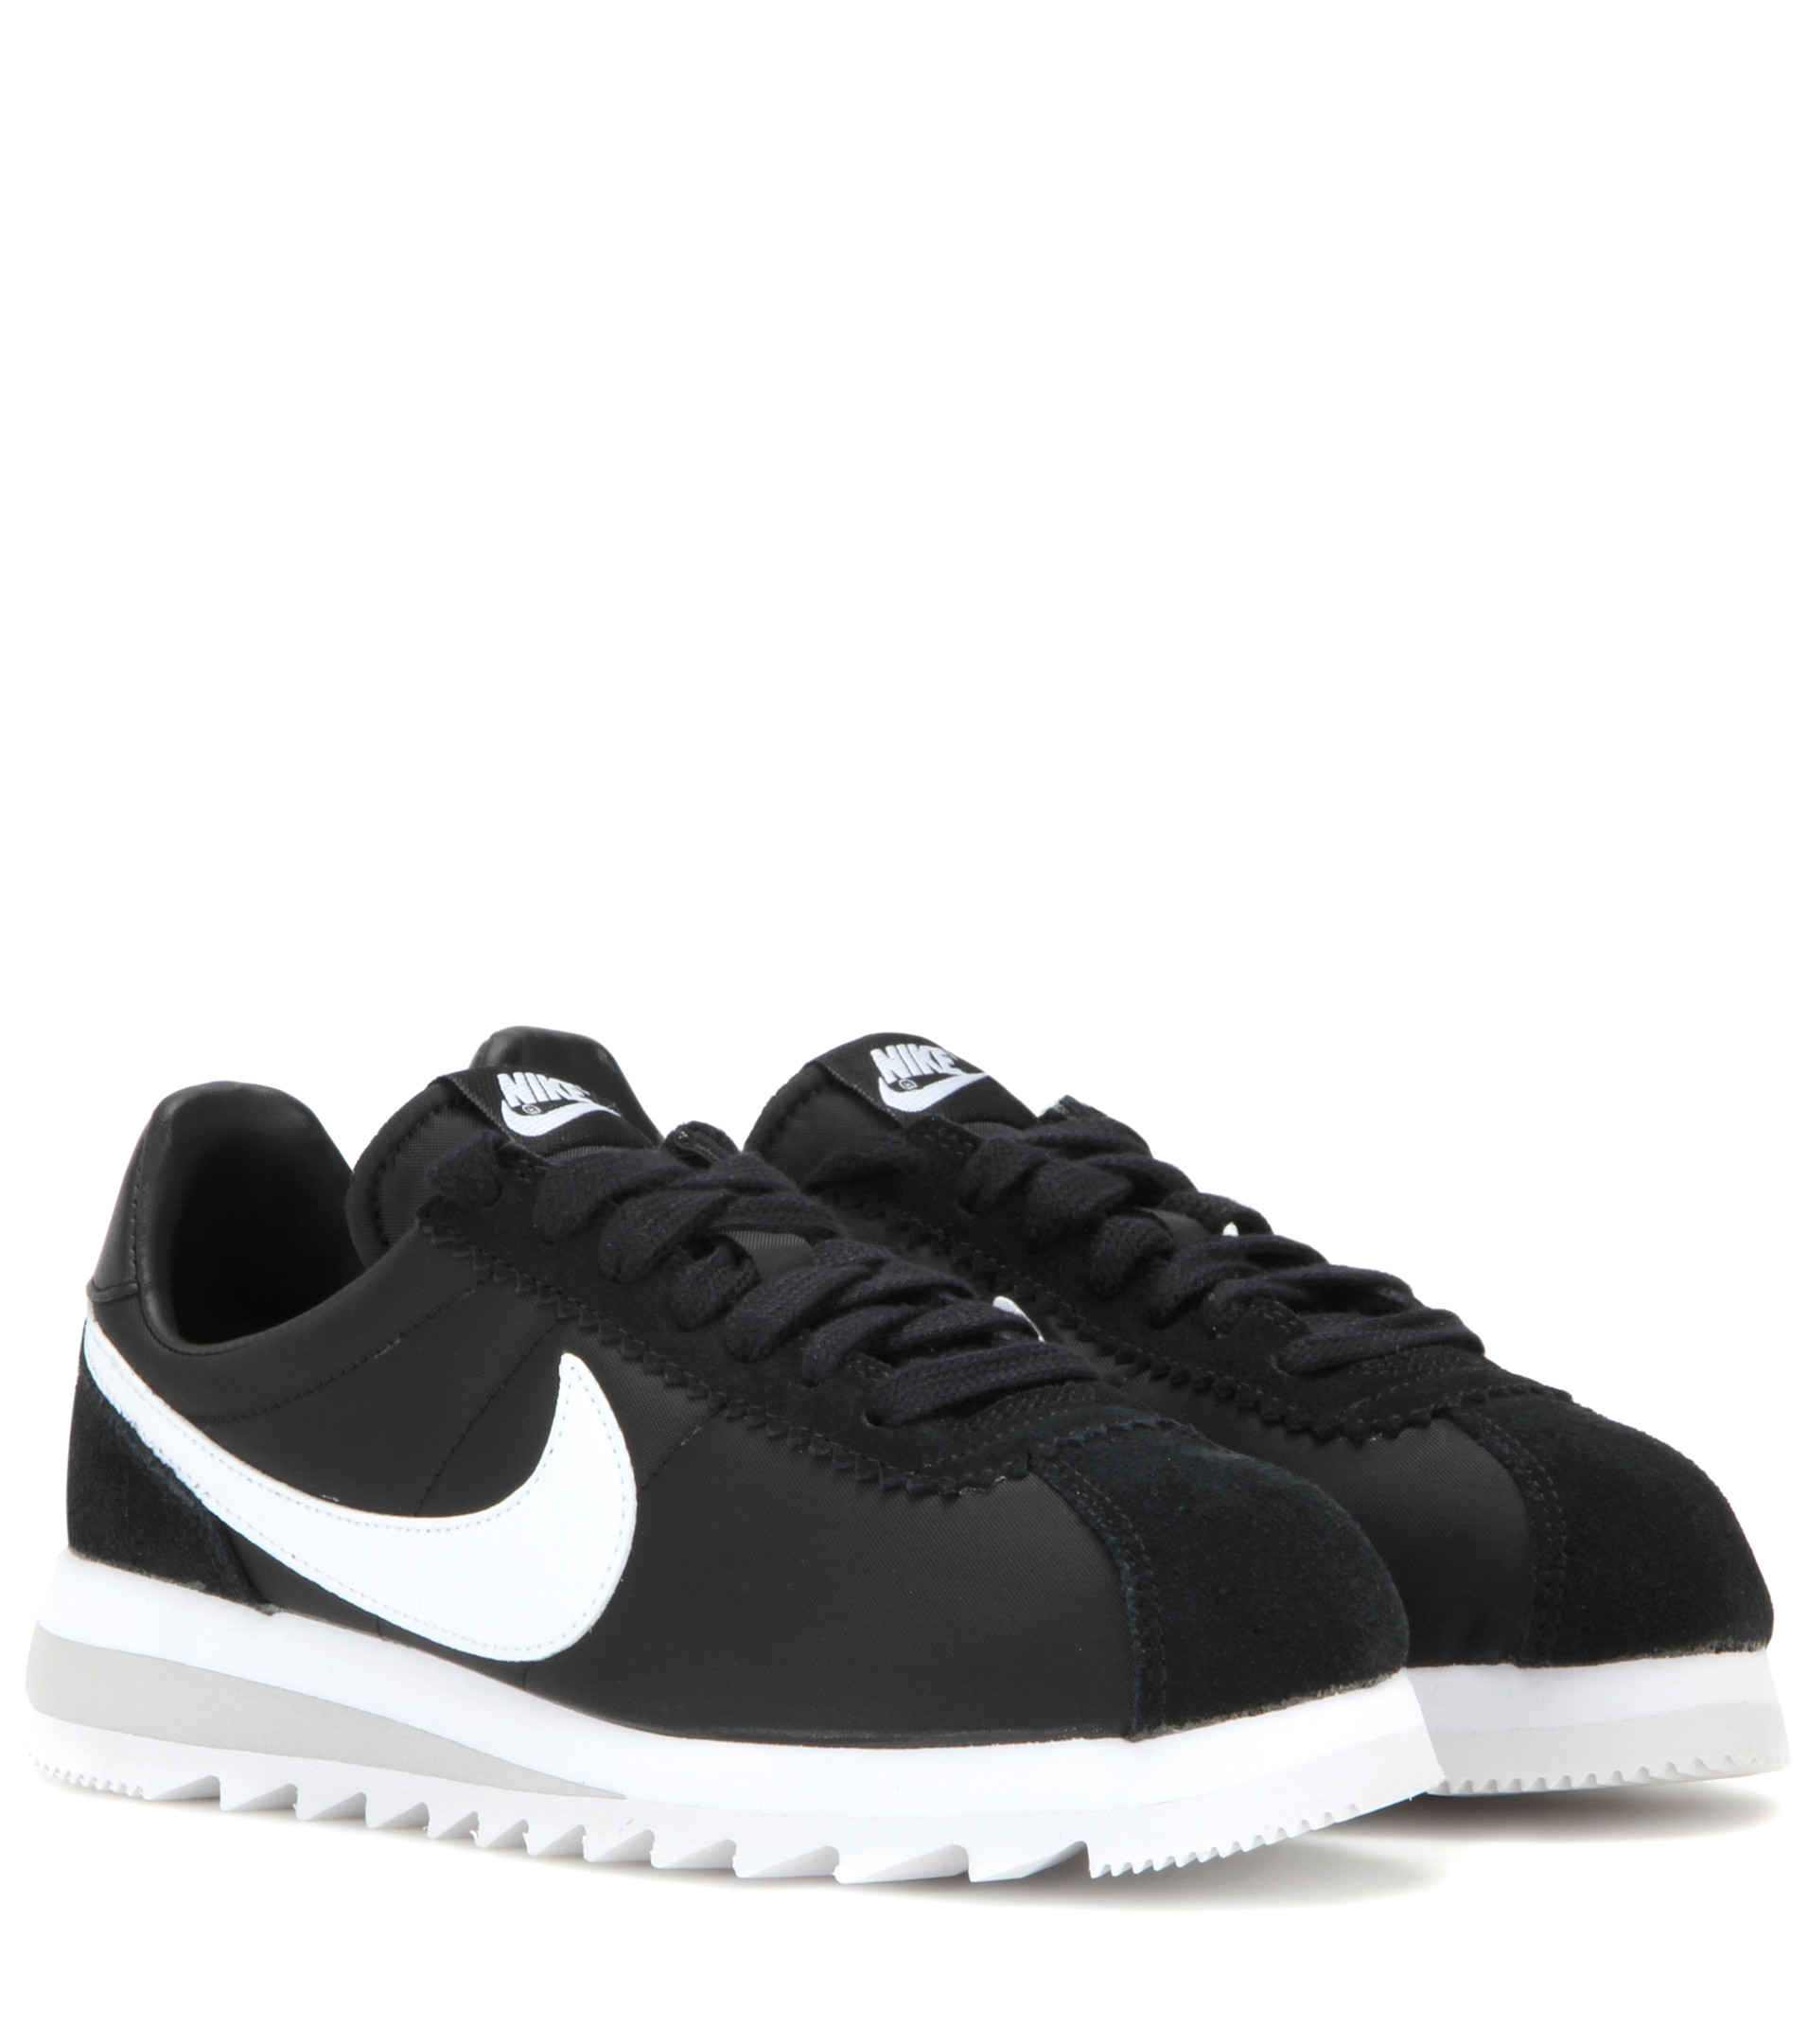 Nike Classic Cortez Epic Sneakers in Black